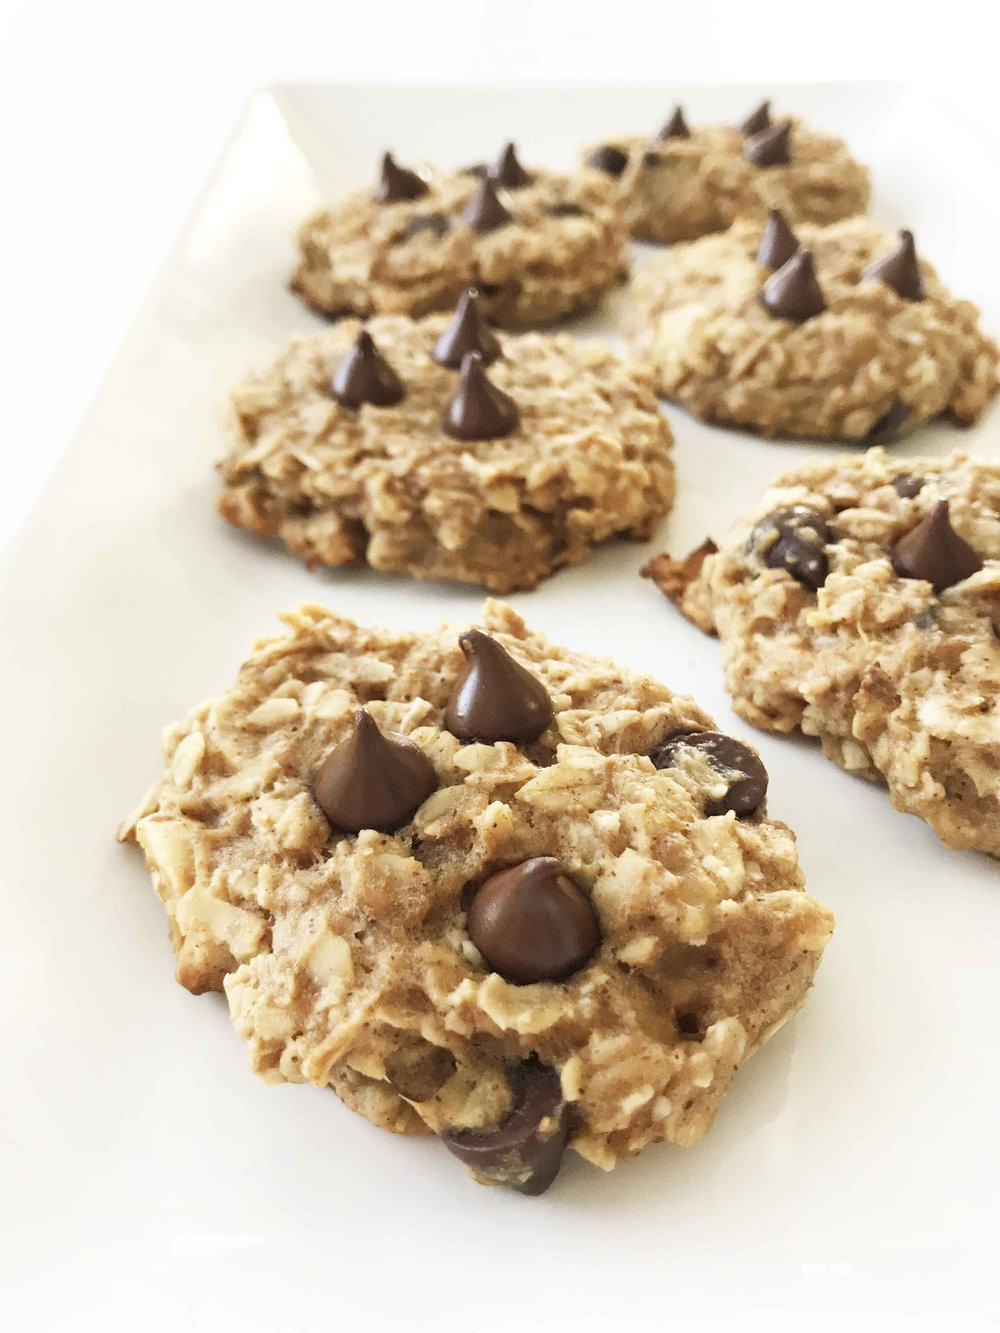 Peanut Butter Oatmeal Cookies Healthy  Healthy Peanut Butter Oatmeal Cookies — The Skinny Fork